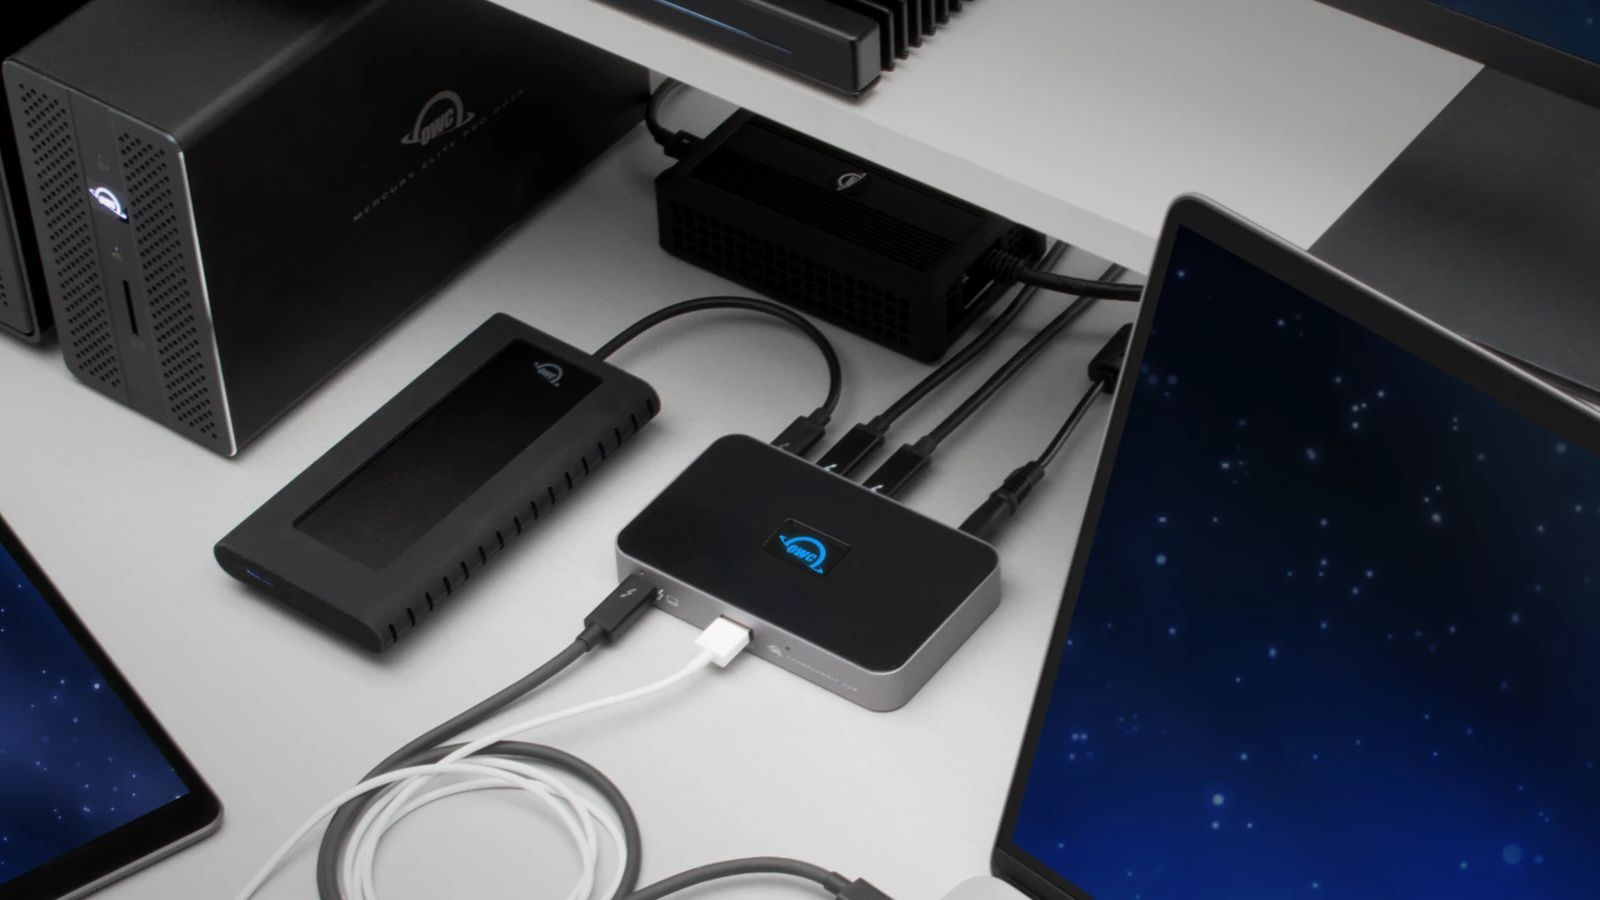 photo of OWC's Upcoming Thunderbolt Hub Adds More Thunderbolt 3 Ports to Your Mac image